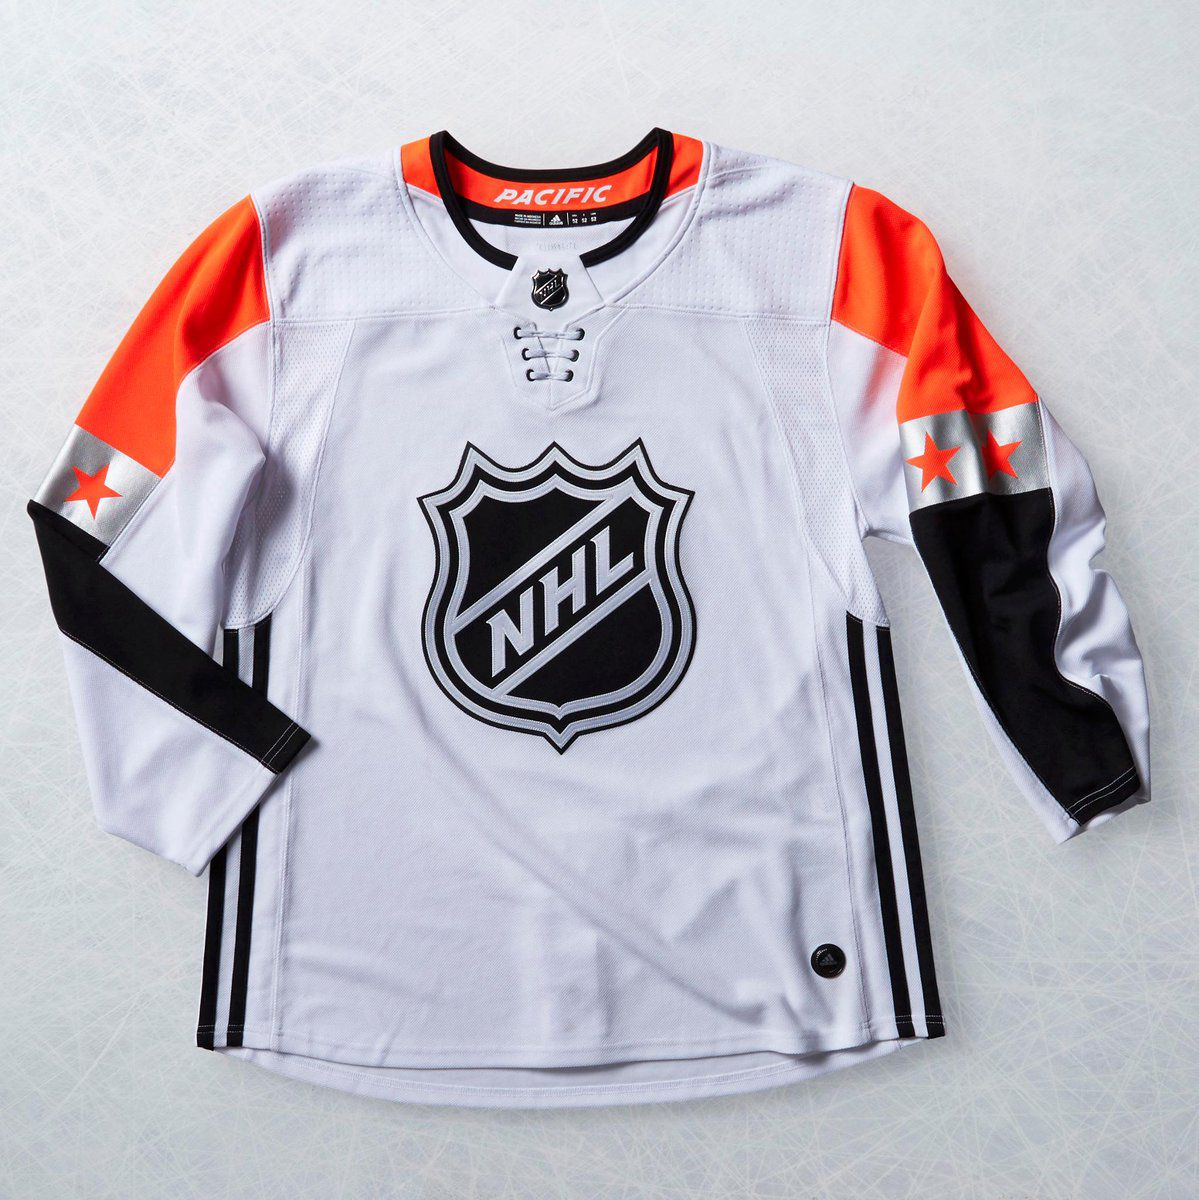 pacific division all star jersey